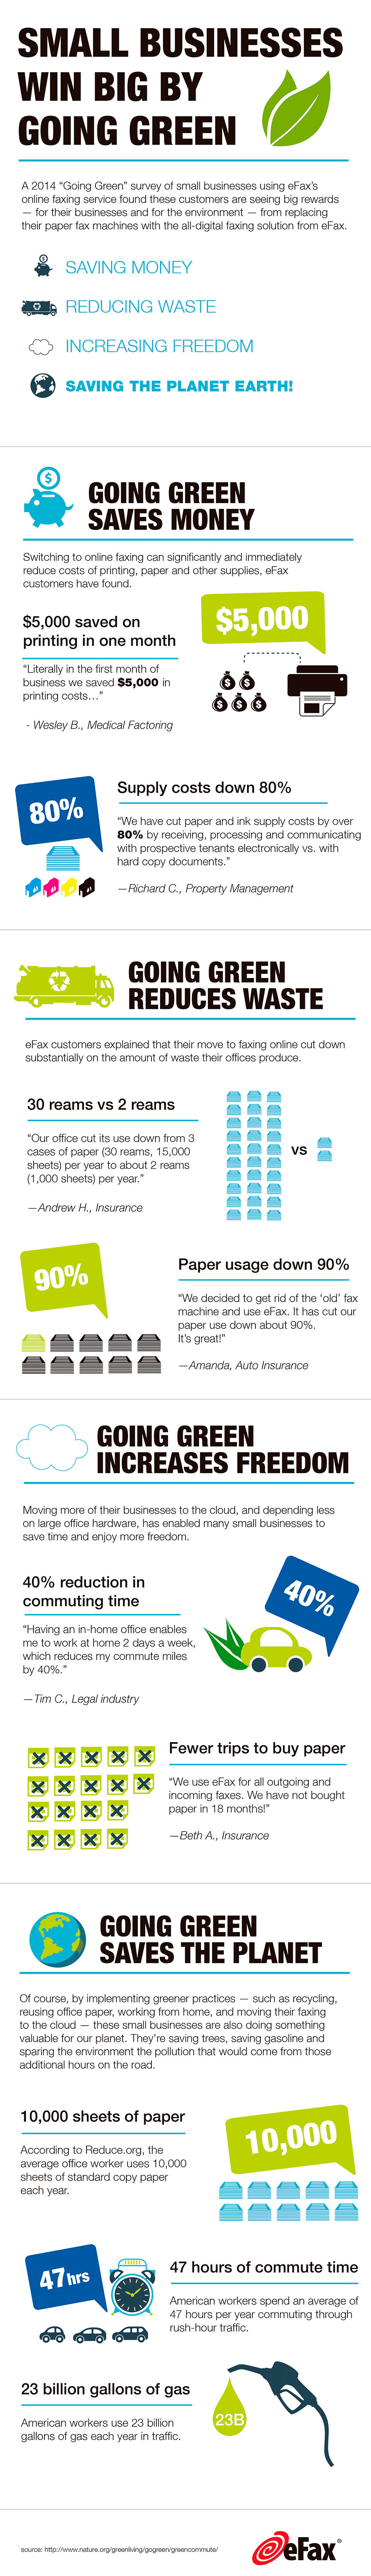 Small Businesses Win Big by Going Green (Graphic: Business Wire)